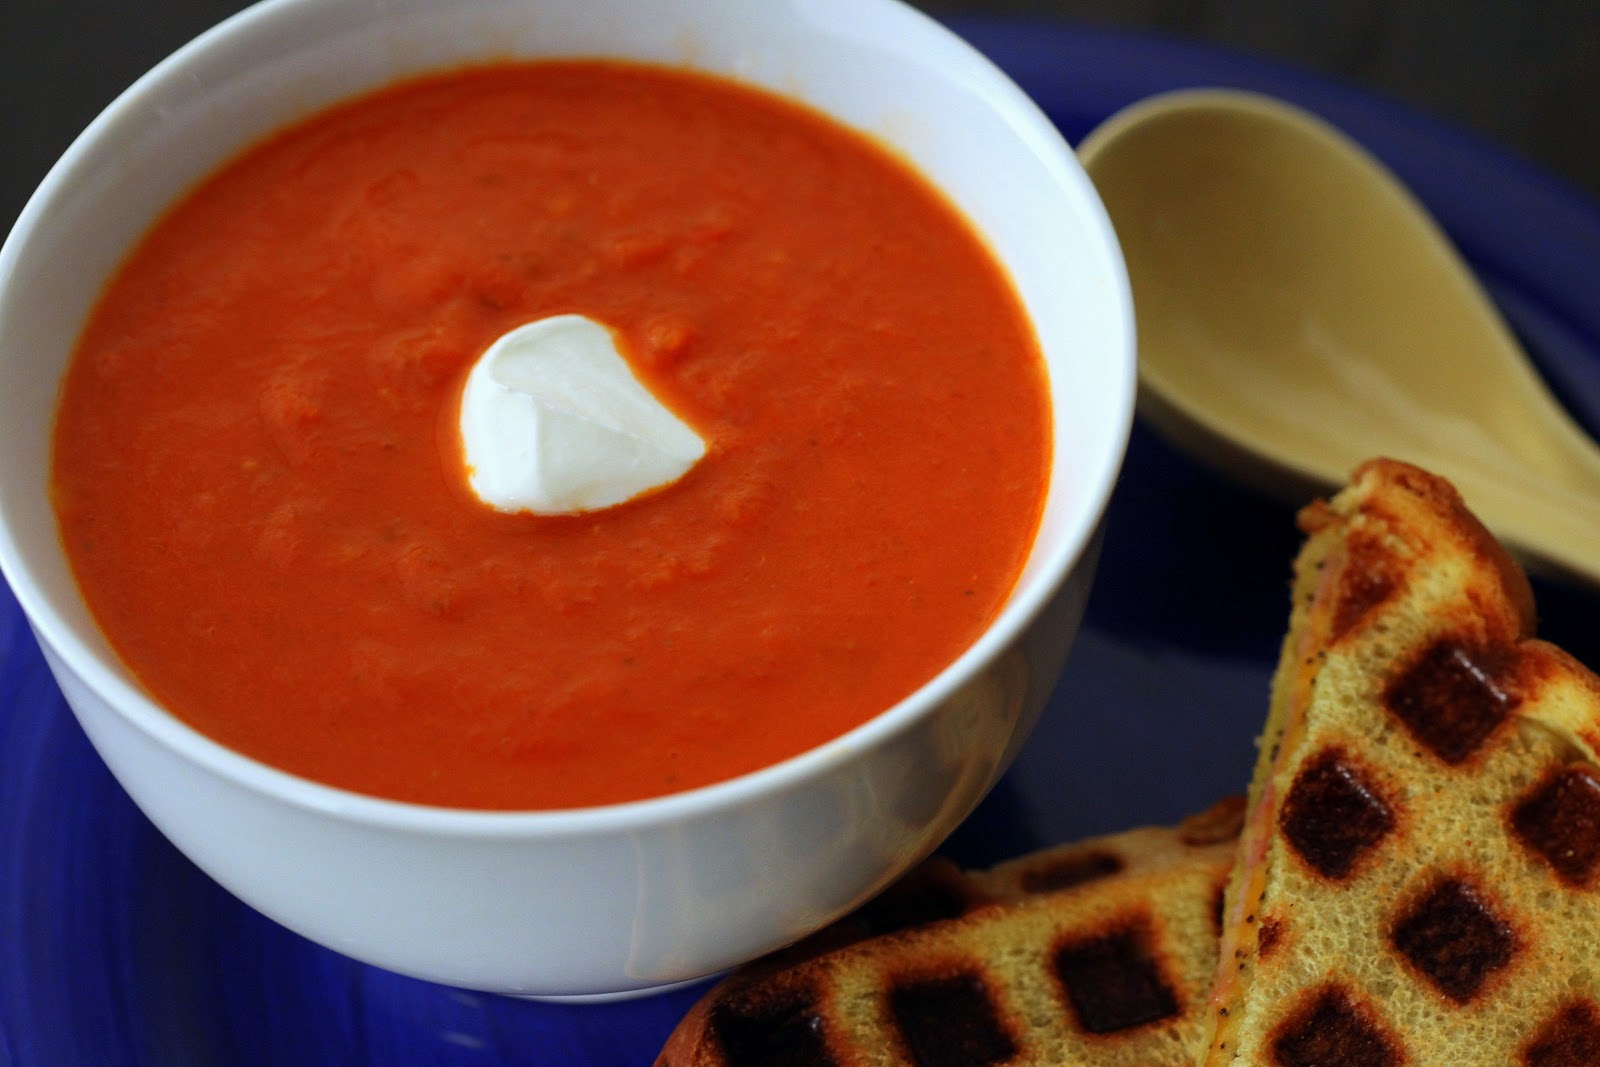 Bo's Bowl: Spicy Tomato Soup